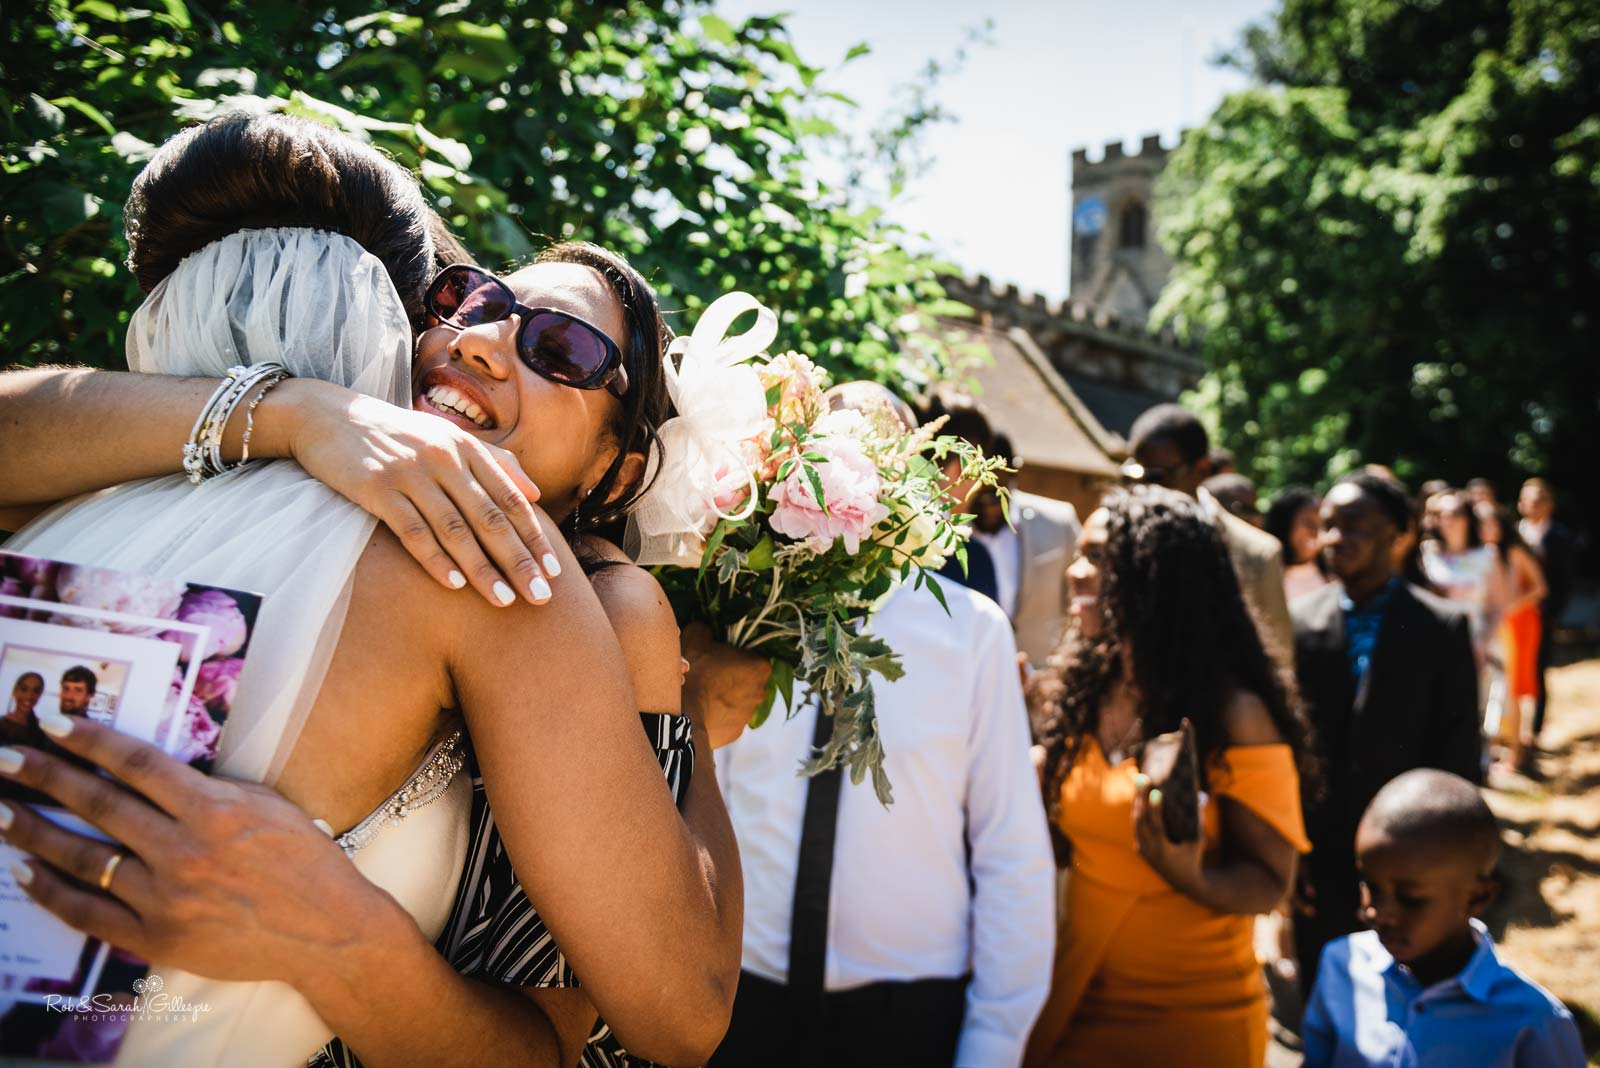 Wedding guests hug bride and groom at Hampton-in-Arden church wedding